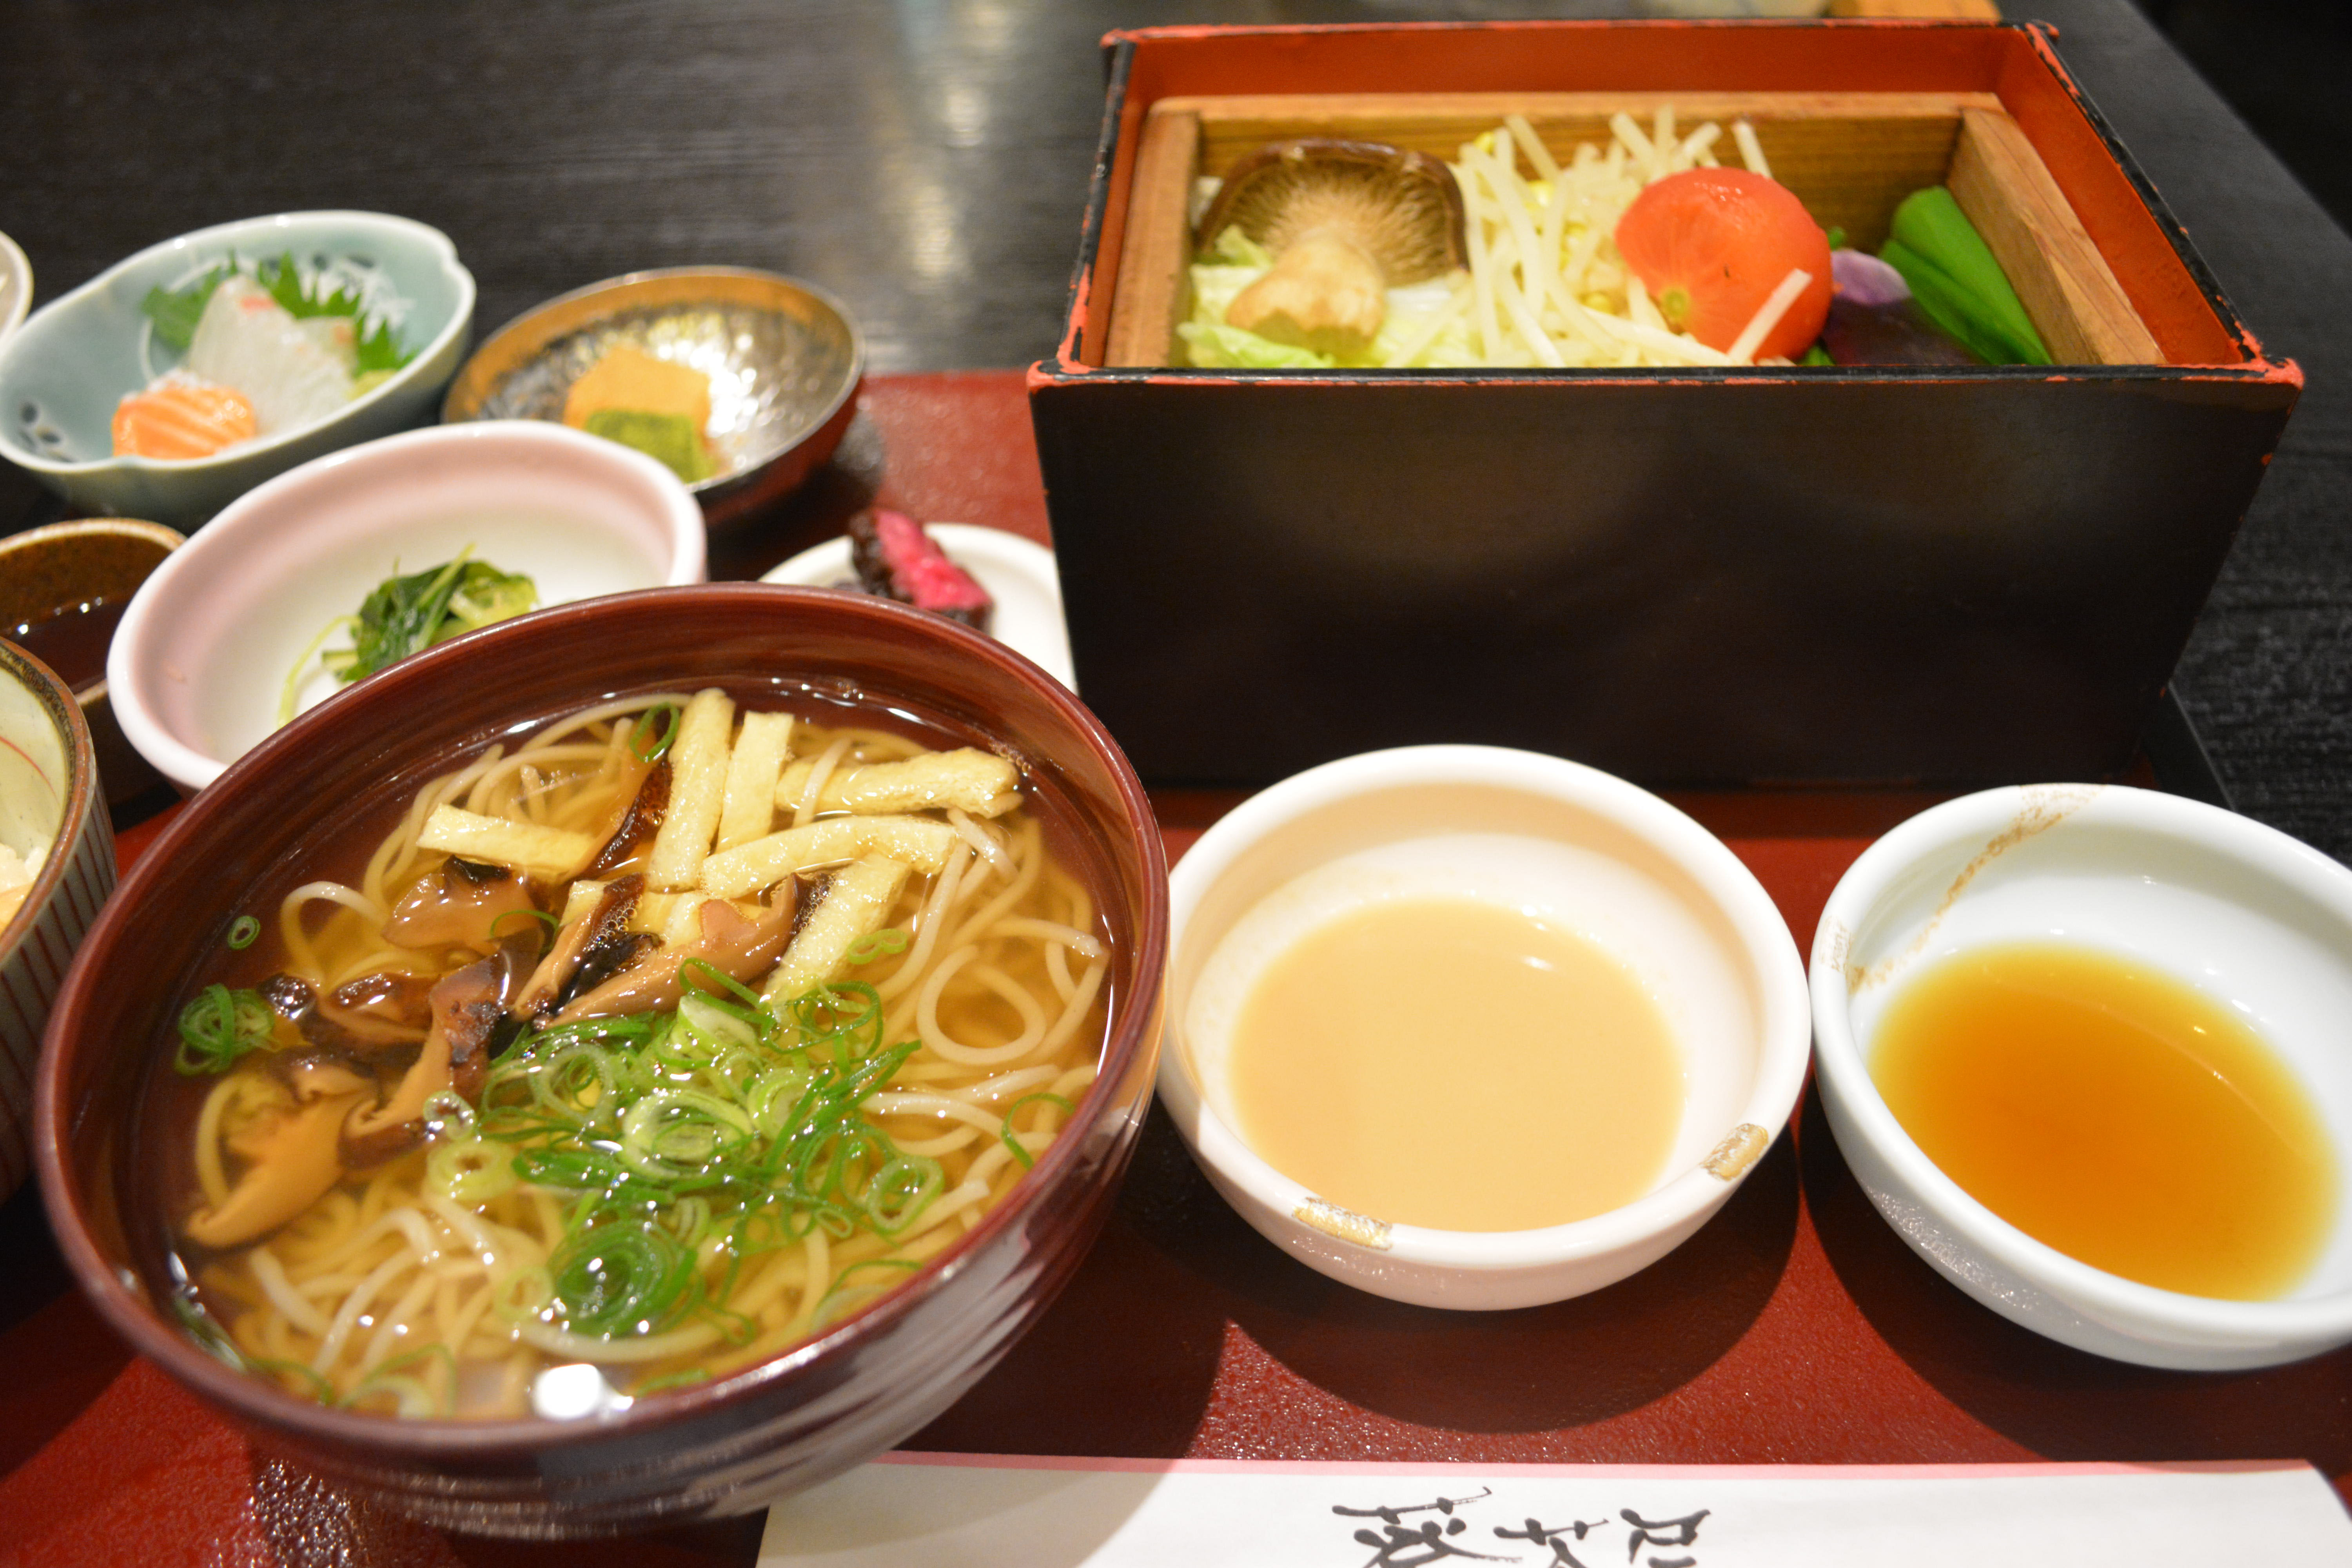 Big lunch: One of many generous flower-themed lunch sets at Aoi-jaya, including the specialty seiro bushi bamboo-steamer dish at top right. | J.J. O'DONOGHUE